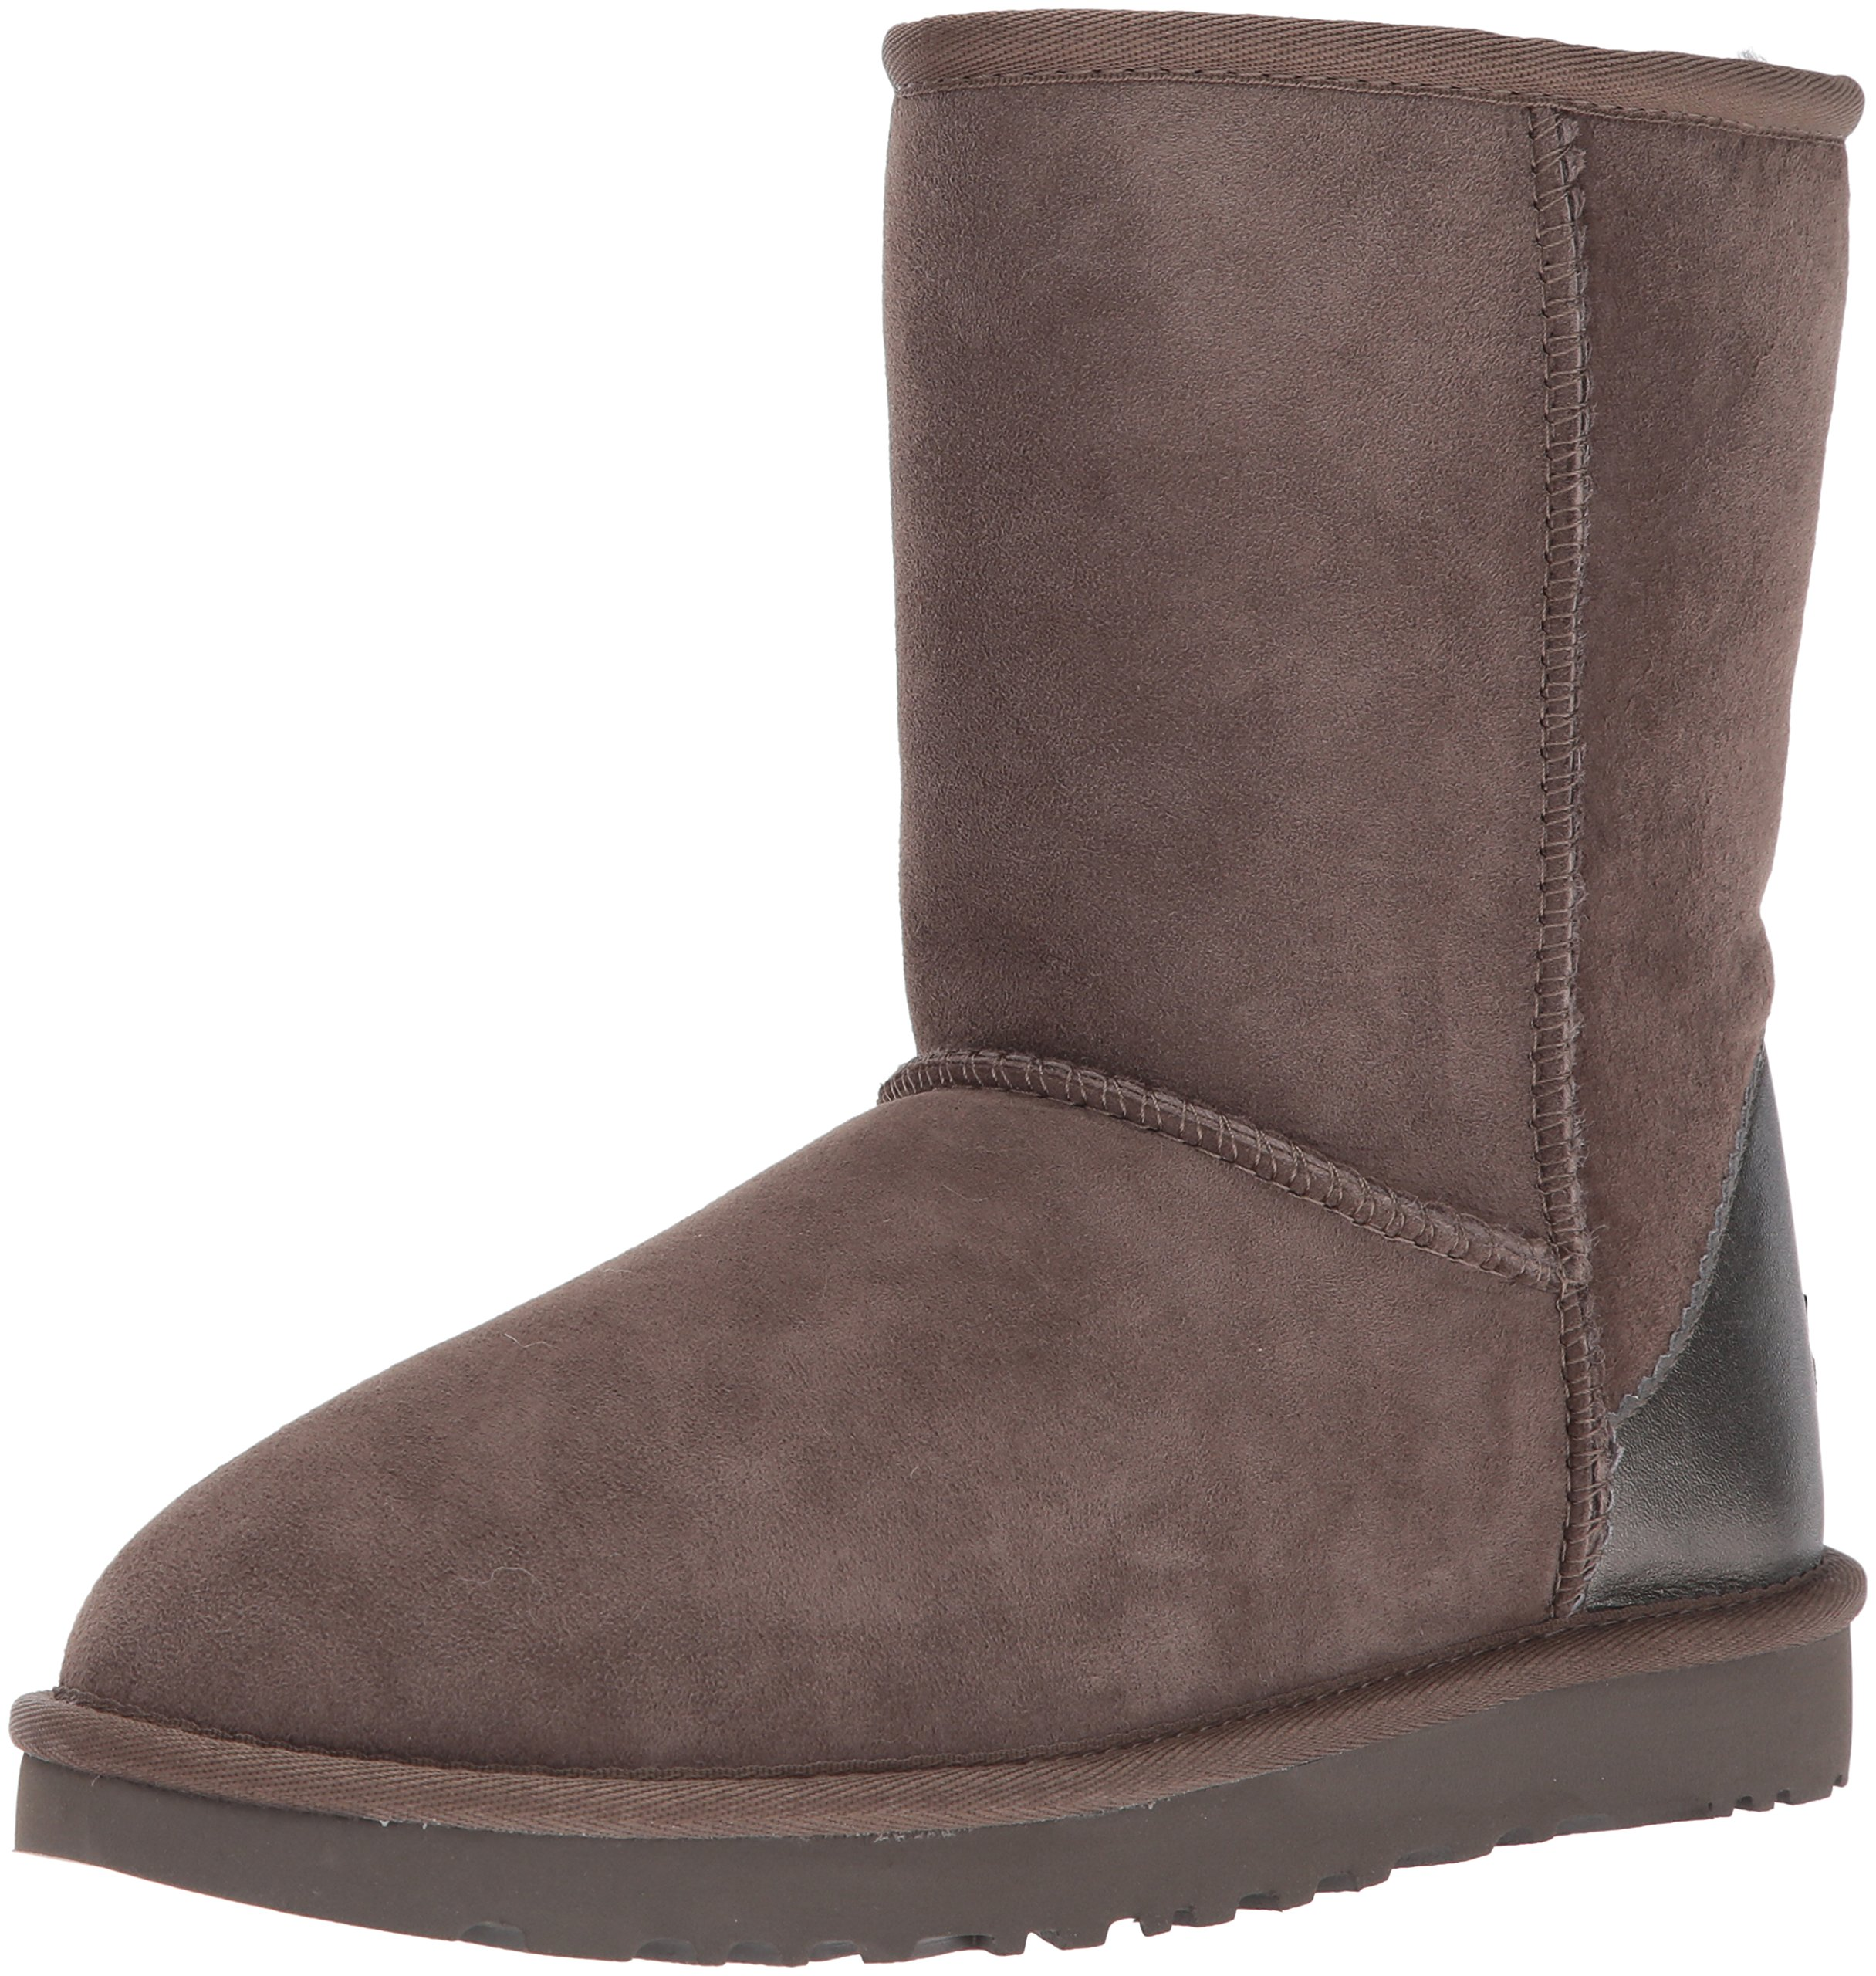 UGG Women's Classic Short II Metallic Winter Boot,Slate,7 M US